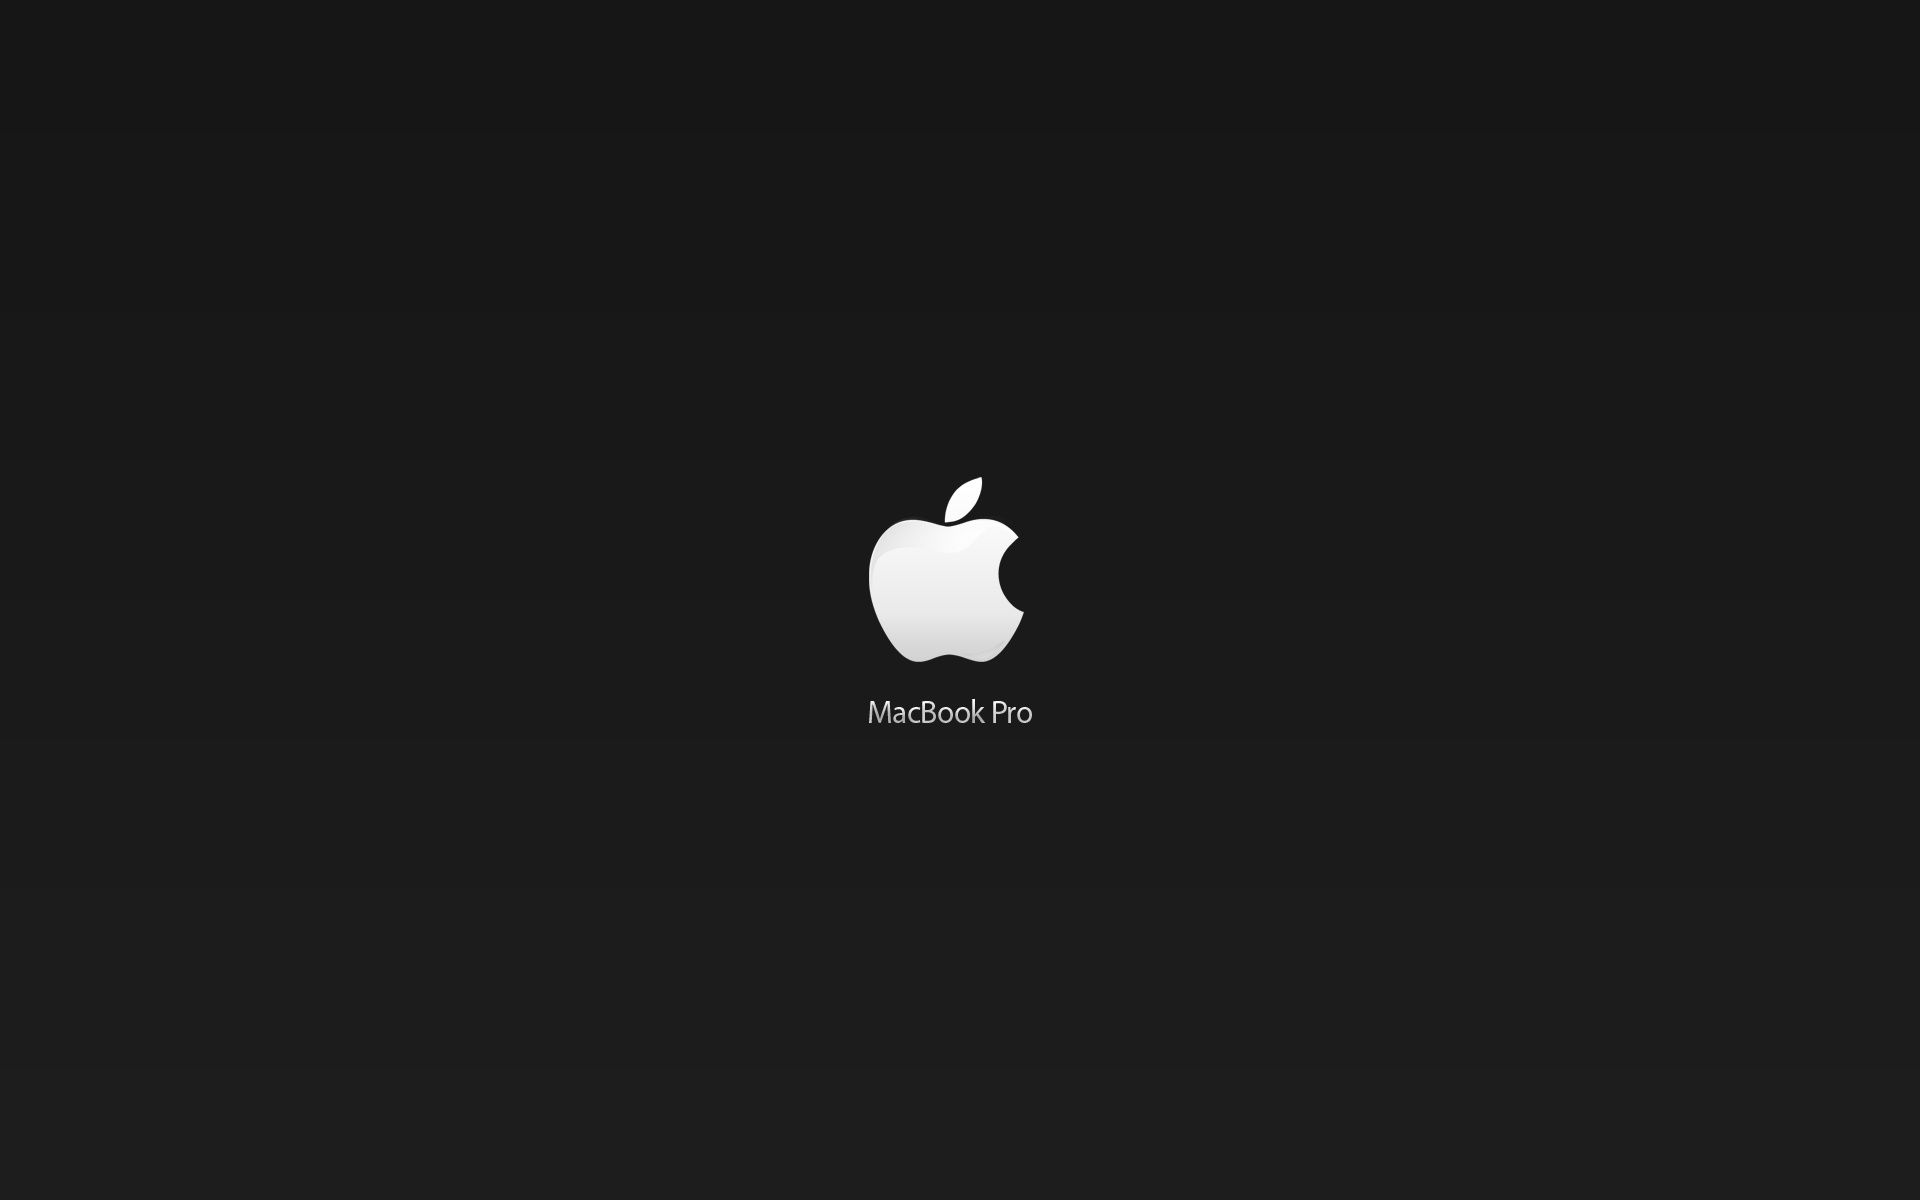 best macbook pro wallpaper hd - sf wallpaper